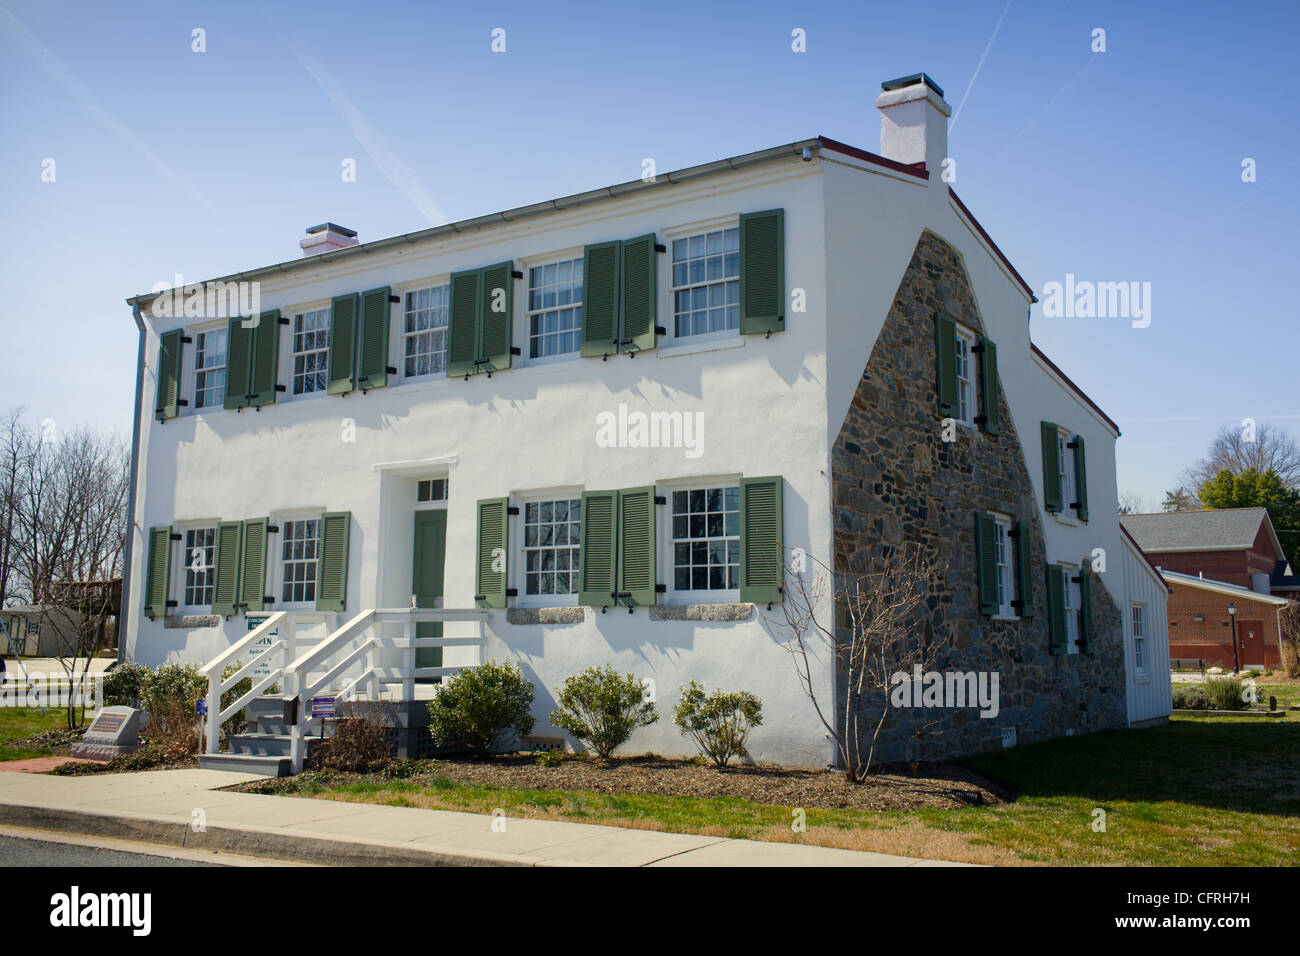 Lighthouse Keeper's home, Havre de Grace, Maryland, Chesapeake Bay - Stock Image